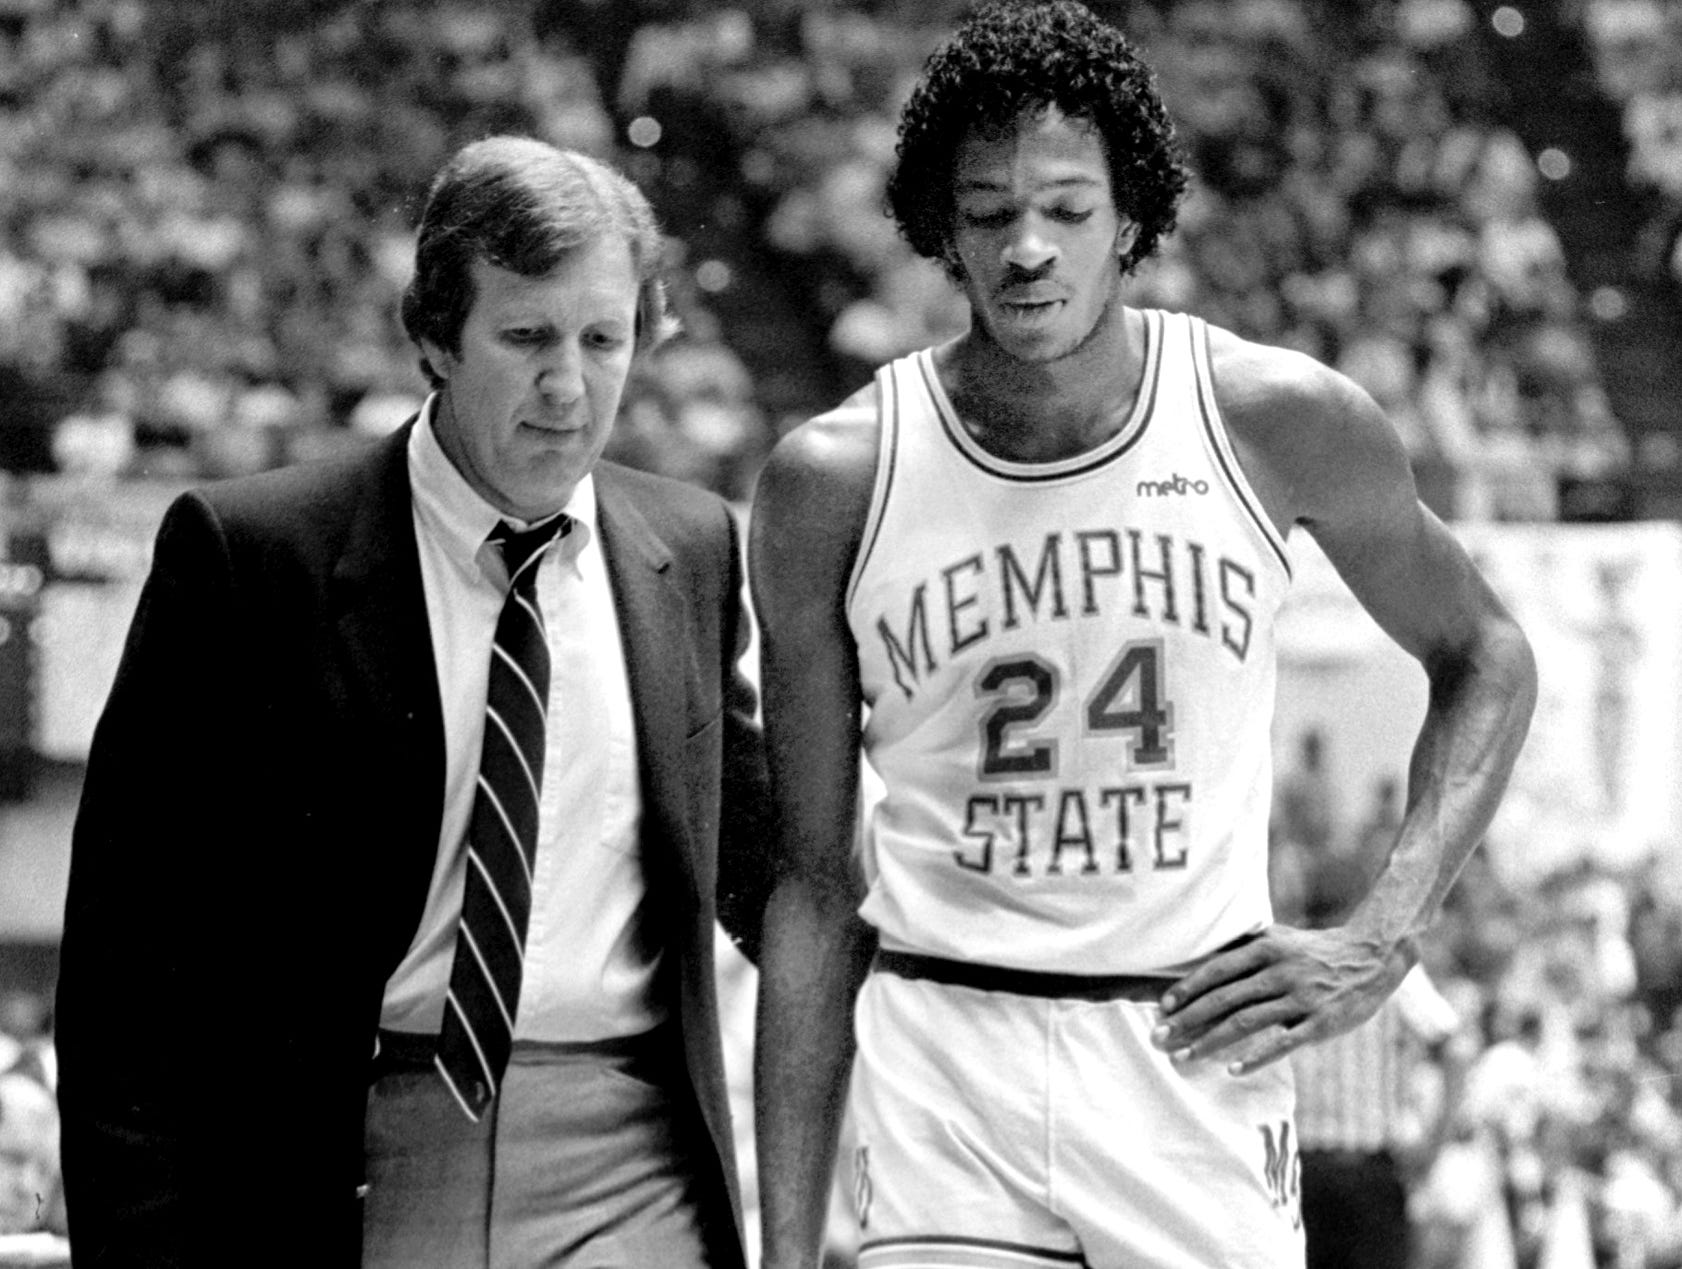 Memphis State head coach Dana Kirk (left) and All-American forward Keith Lee are shown during the Tigers game with Virginia Tech in February 1982. Memphis State head coach Dana Kirk (left) and All-American forward Keith Lee are shown during the Tigers game with Virginia Tech in February 1982.